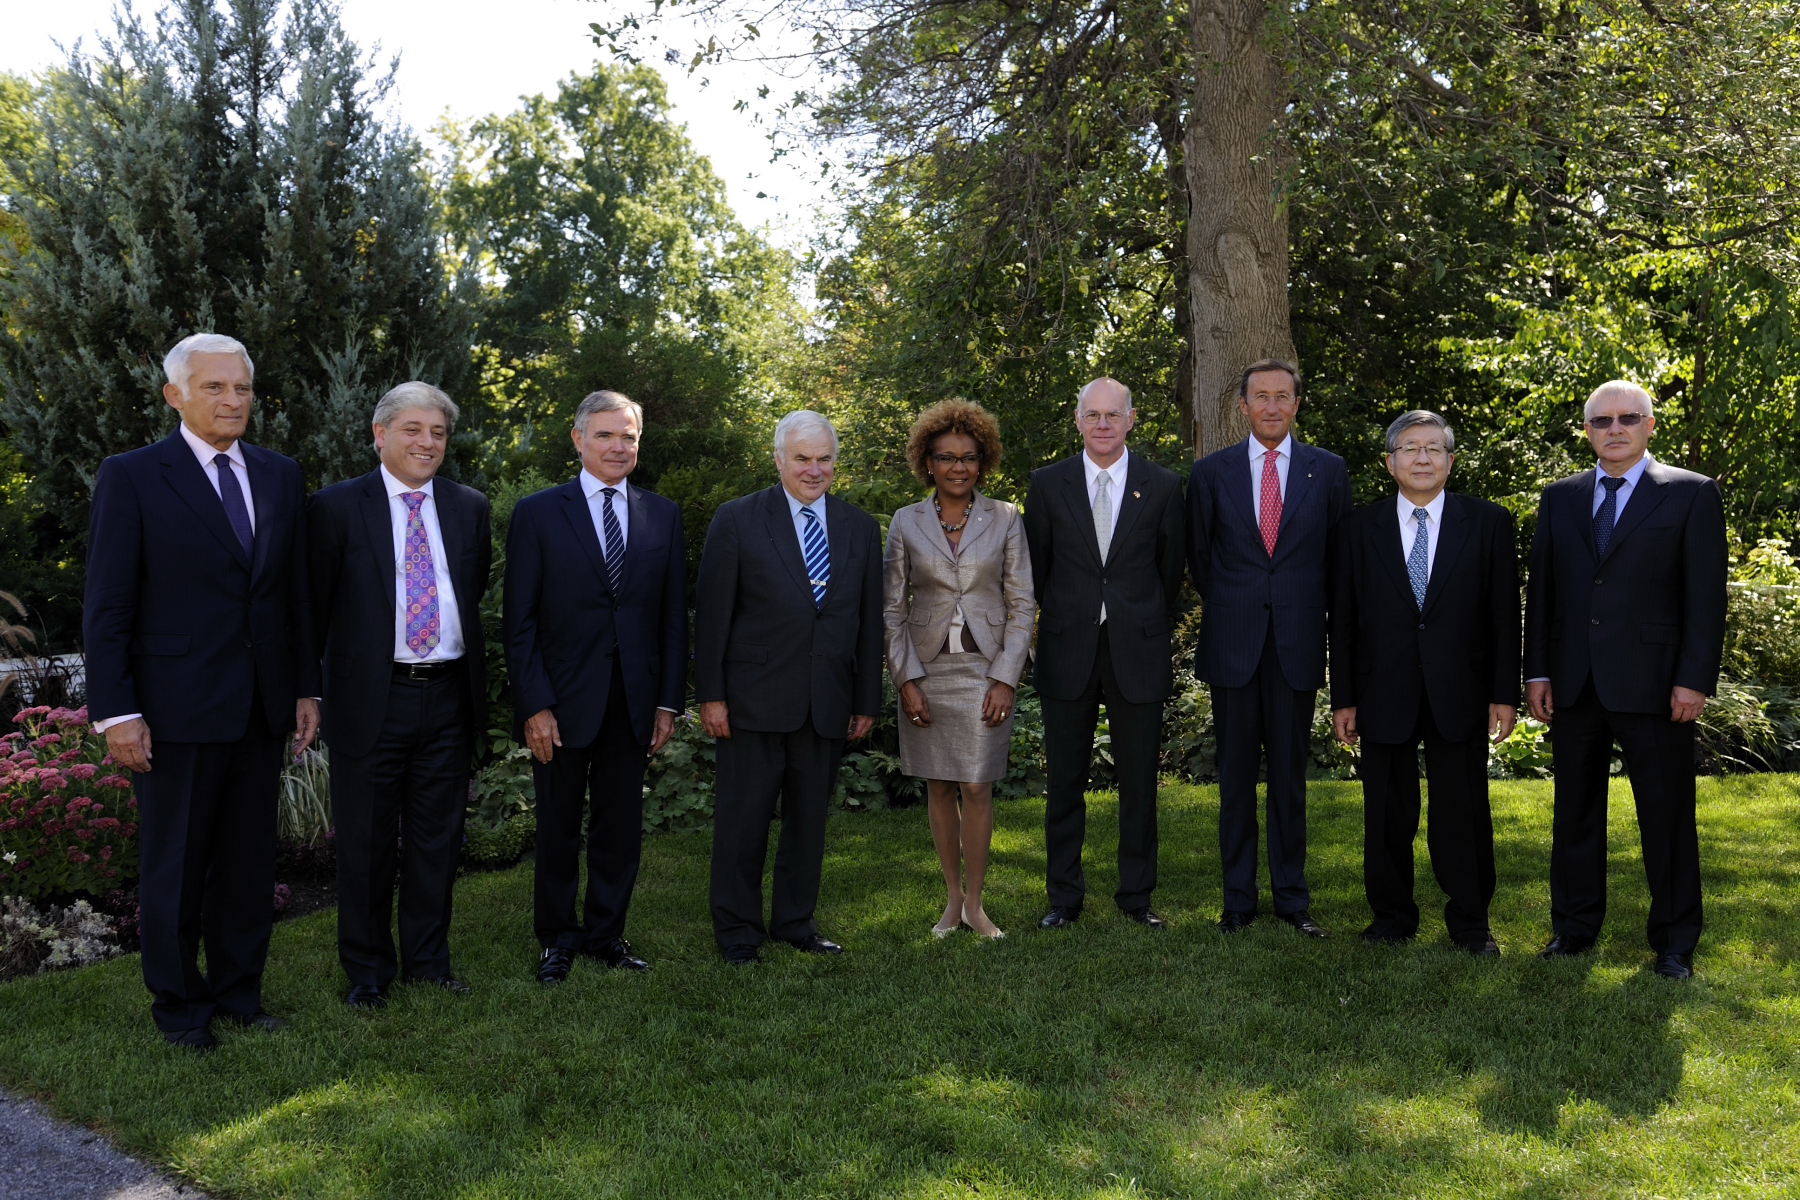 On September 11, 2010, Her Excellency the Right Honourable Michaëlle Jean met with the Speakers of the Lower Houses of the G8 for a luncheon at Rideau Hall. Pictured from left to right: The Honourable Jerzy Buzek, President of the European Parliament; The Right Honourable John Bercow, Speaker of the House of Commons of the United Kingdom of Great Britain and Northern Ireland; His Excellency Bernard Accoyer, Speaker of the National Assembly of the French Republic; The Honourable Peter Milliken, M.P., Speaker of the House of Commons of Canada; Her Excellency the Right Honourable Michaëlle Jean, Governor General of Canada; His Excellency Norbert Lammert, President of the German Bundestag of the Federal Republic of Germany; His Excellency Gianfranco Fini, President of the Chamber of Deputies of the Italian Republic; The Honourable Yokomichi Takahiro, Speaker of the House of Representatives of Japan; and His Excellency Oleg Morozov, First Deputy Speaker of the State Duma of the Federal Assembly of the Russian Federation.